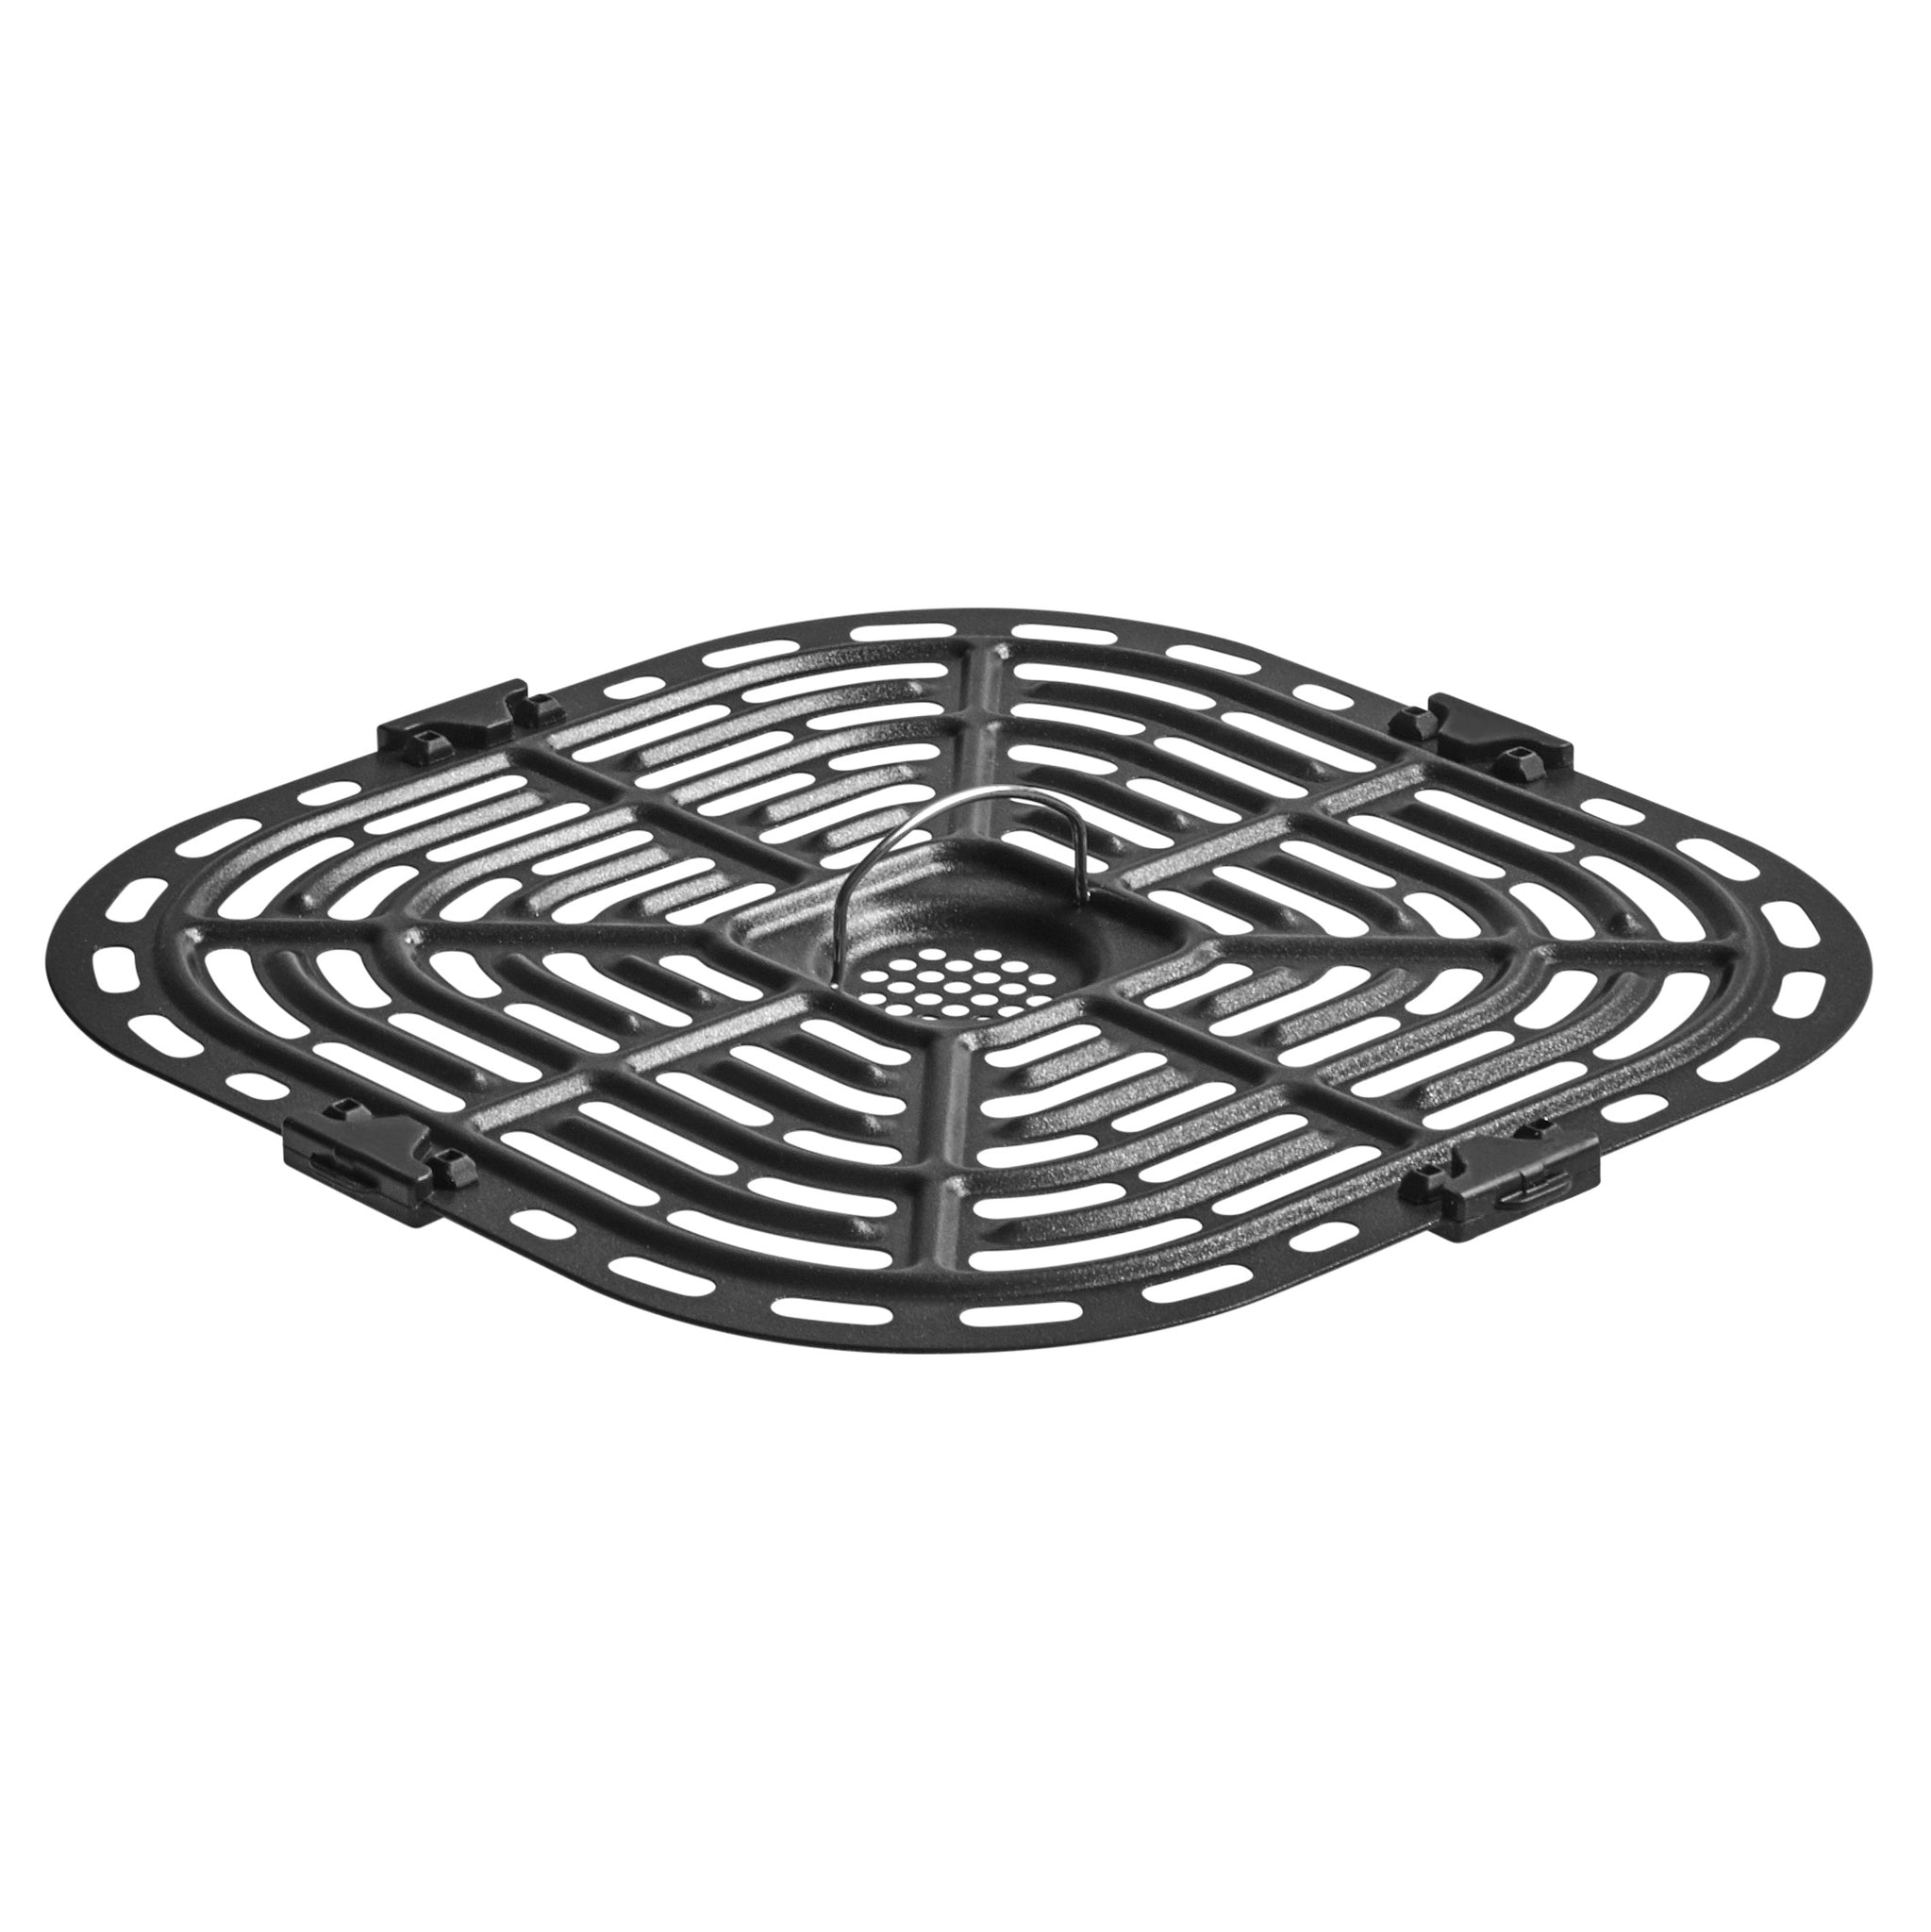 Replacement Part (IP)-Vortex Plus Air Fry 6-CookingTray-210-0052-01